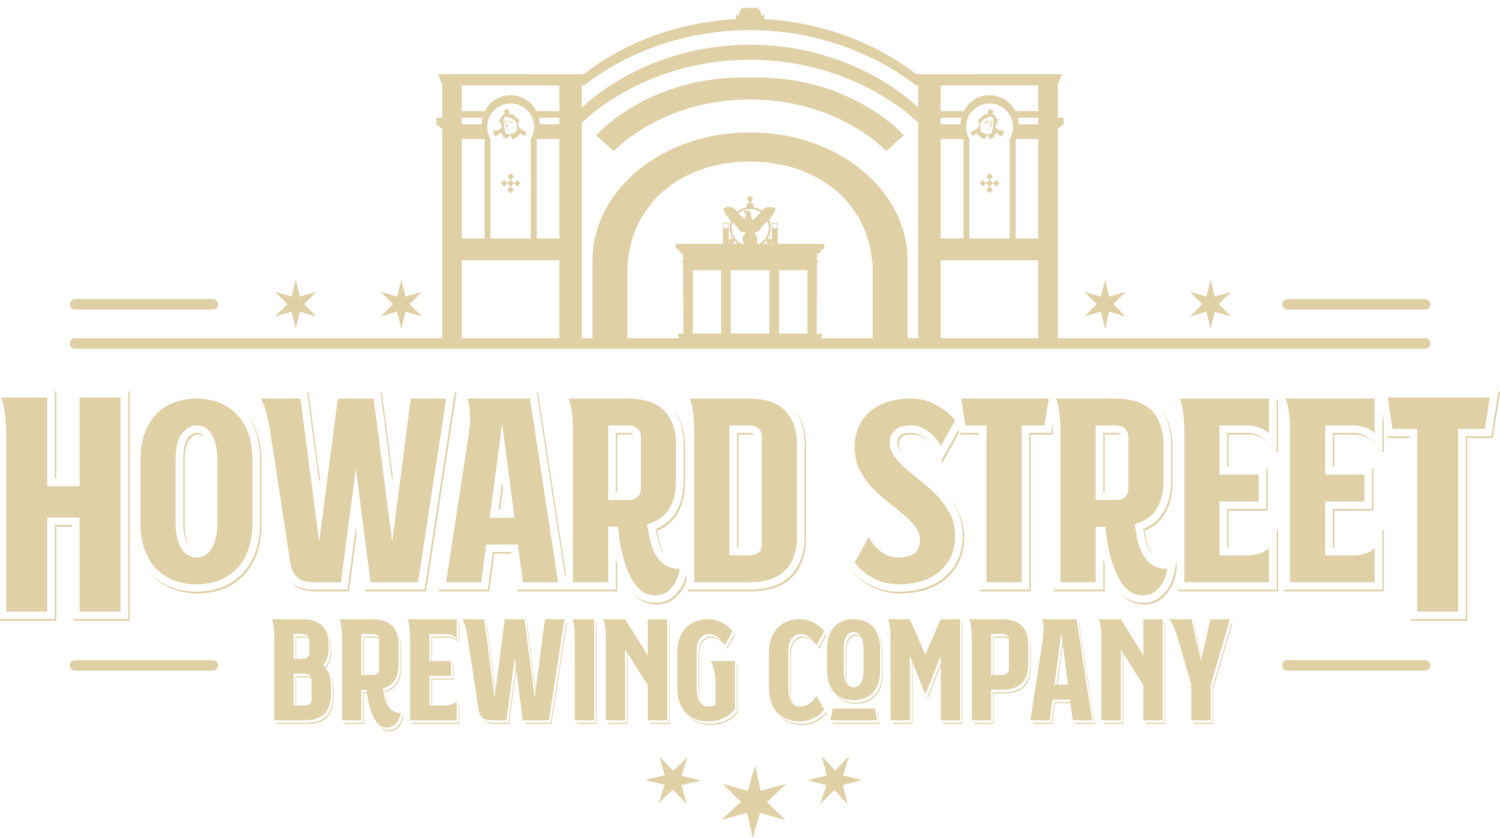 Howard Street Brewing Company